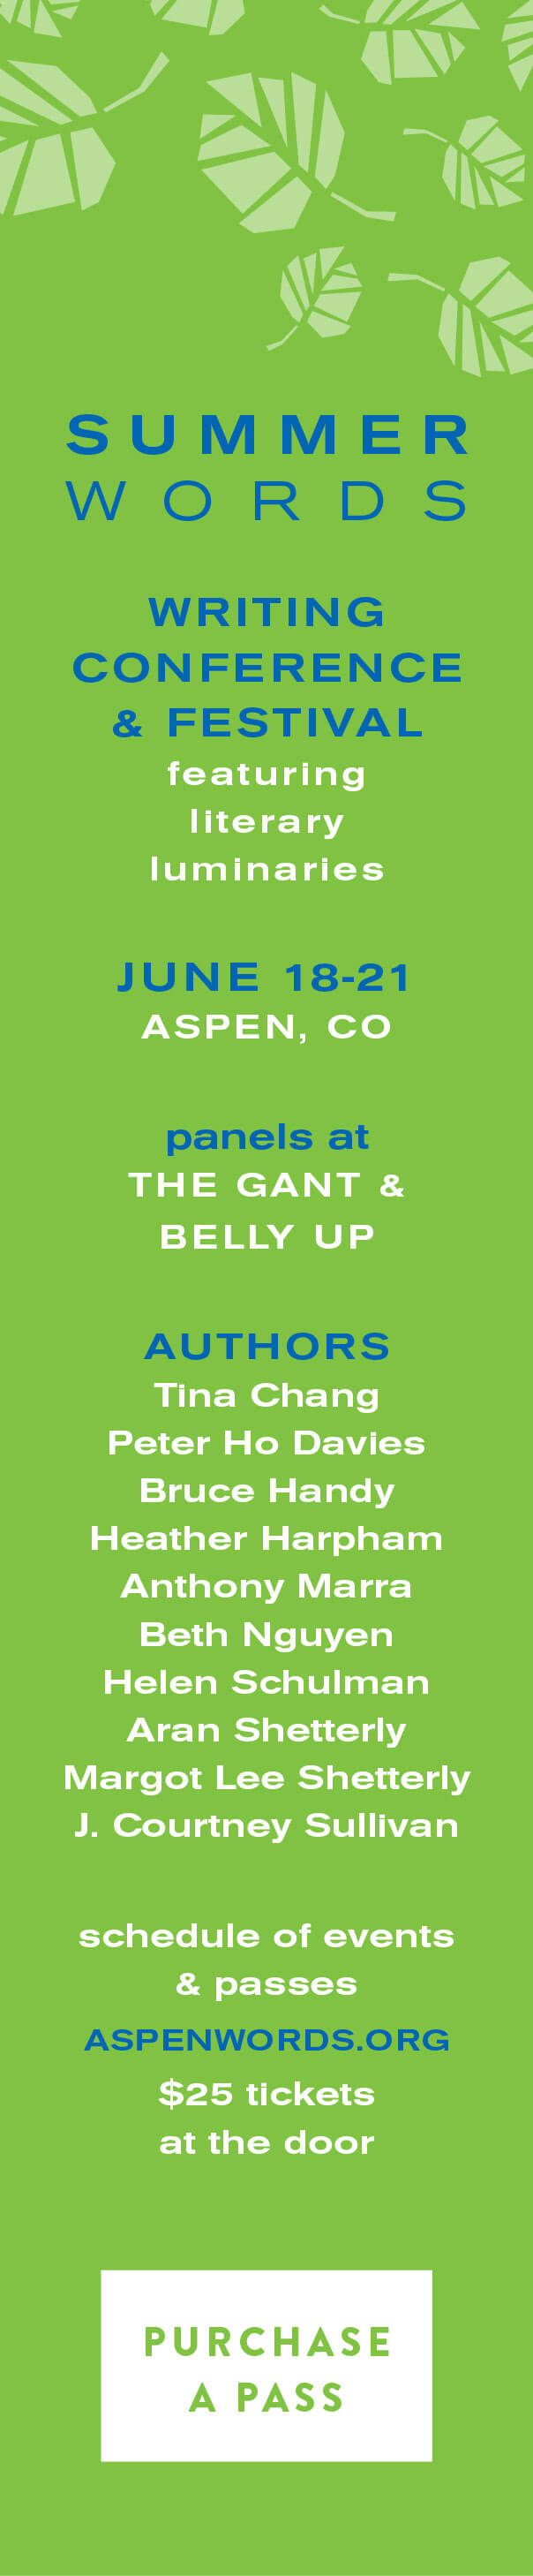 Aspen Words Summer Words Digital Advertising   Event Collateral Design by The Qurious Effect.